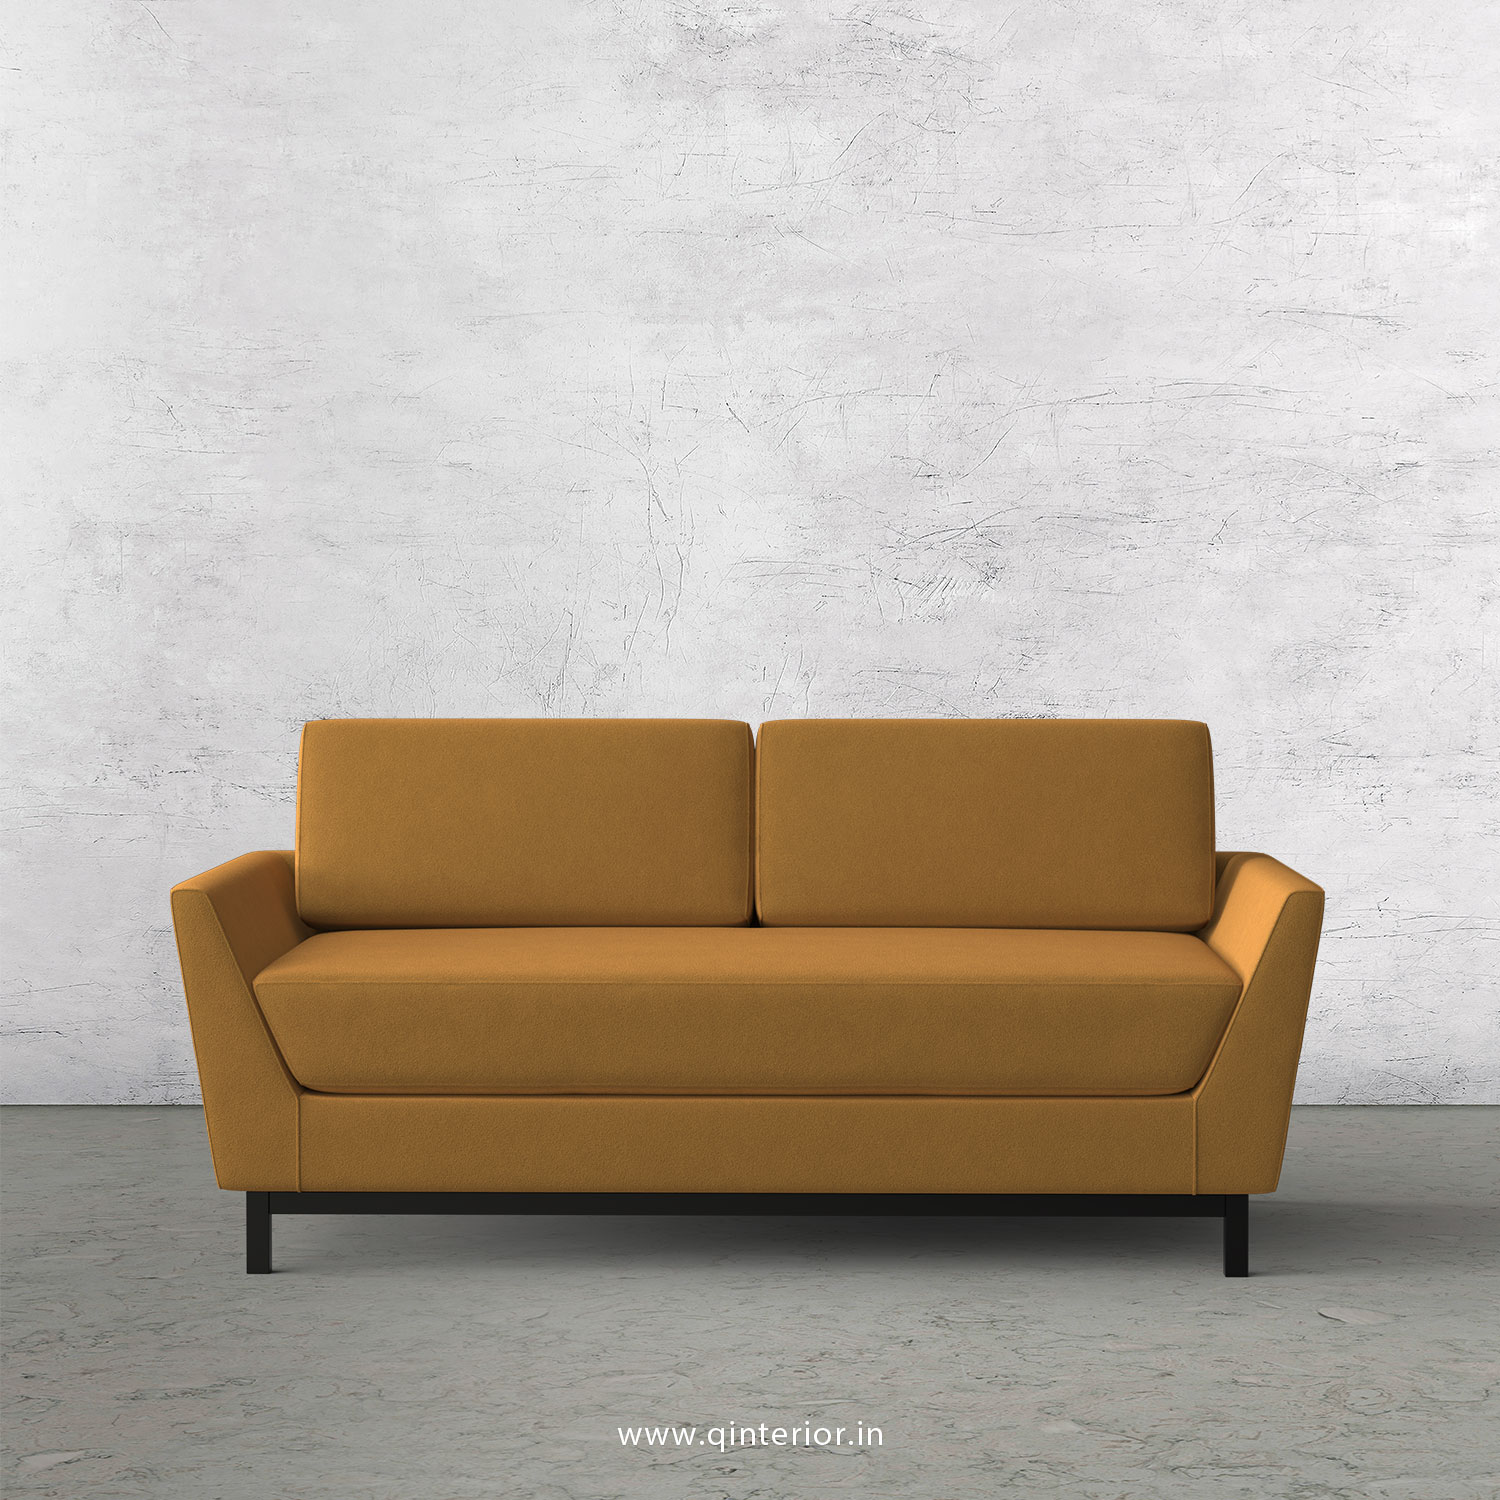 Blitz 2 Seater Sofa in Velvet Fabric - SFA002 VL18